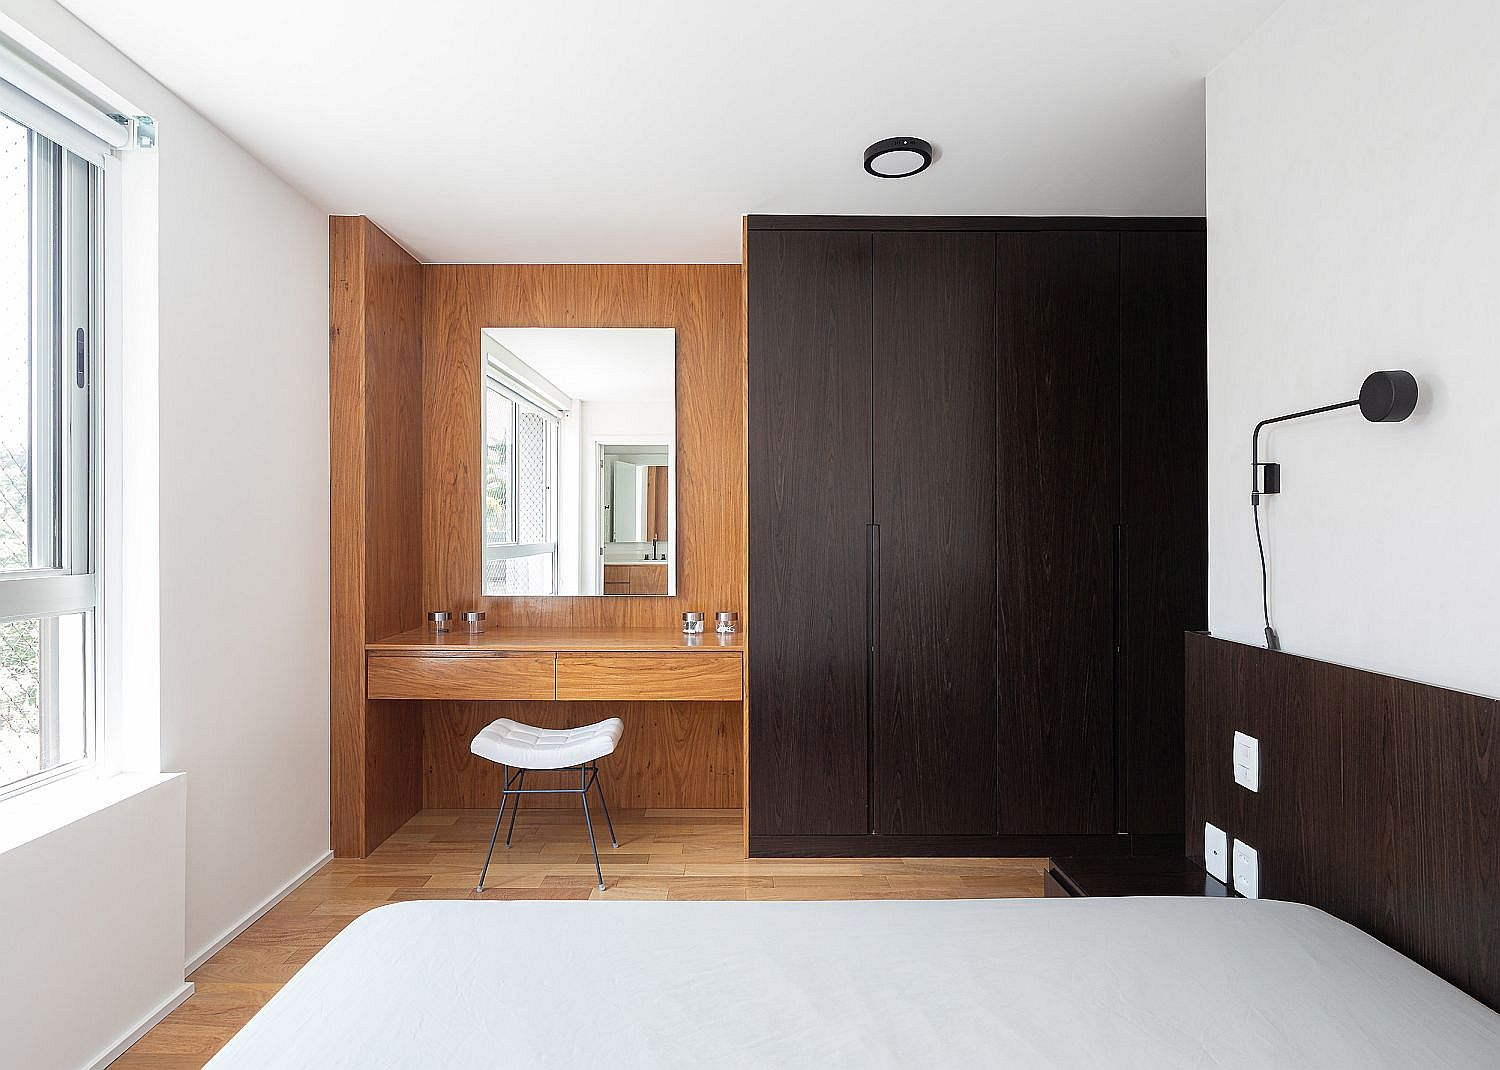 Modern bedroom of the apartment in white and wood feels elegant and understated